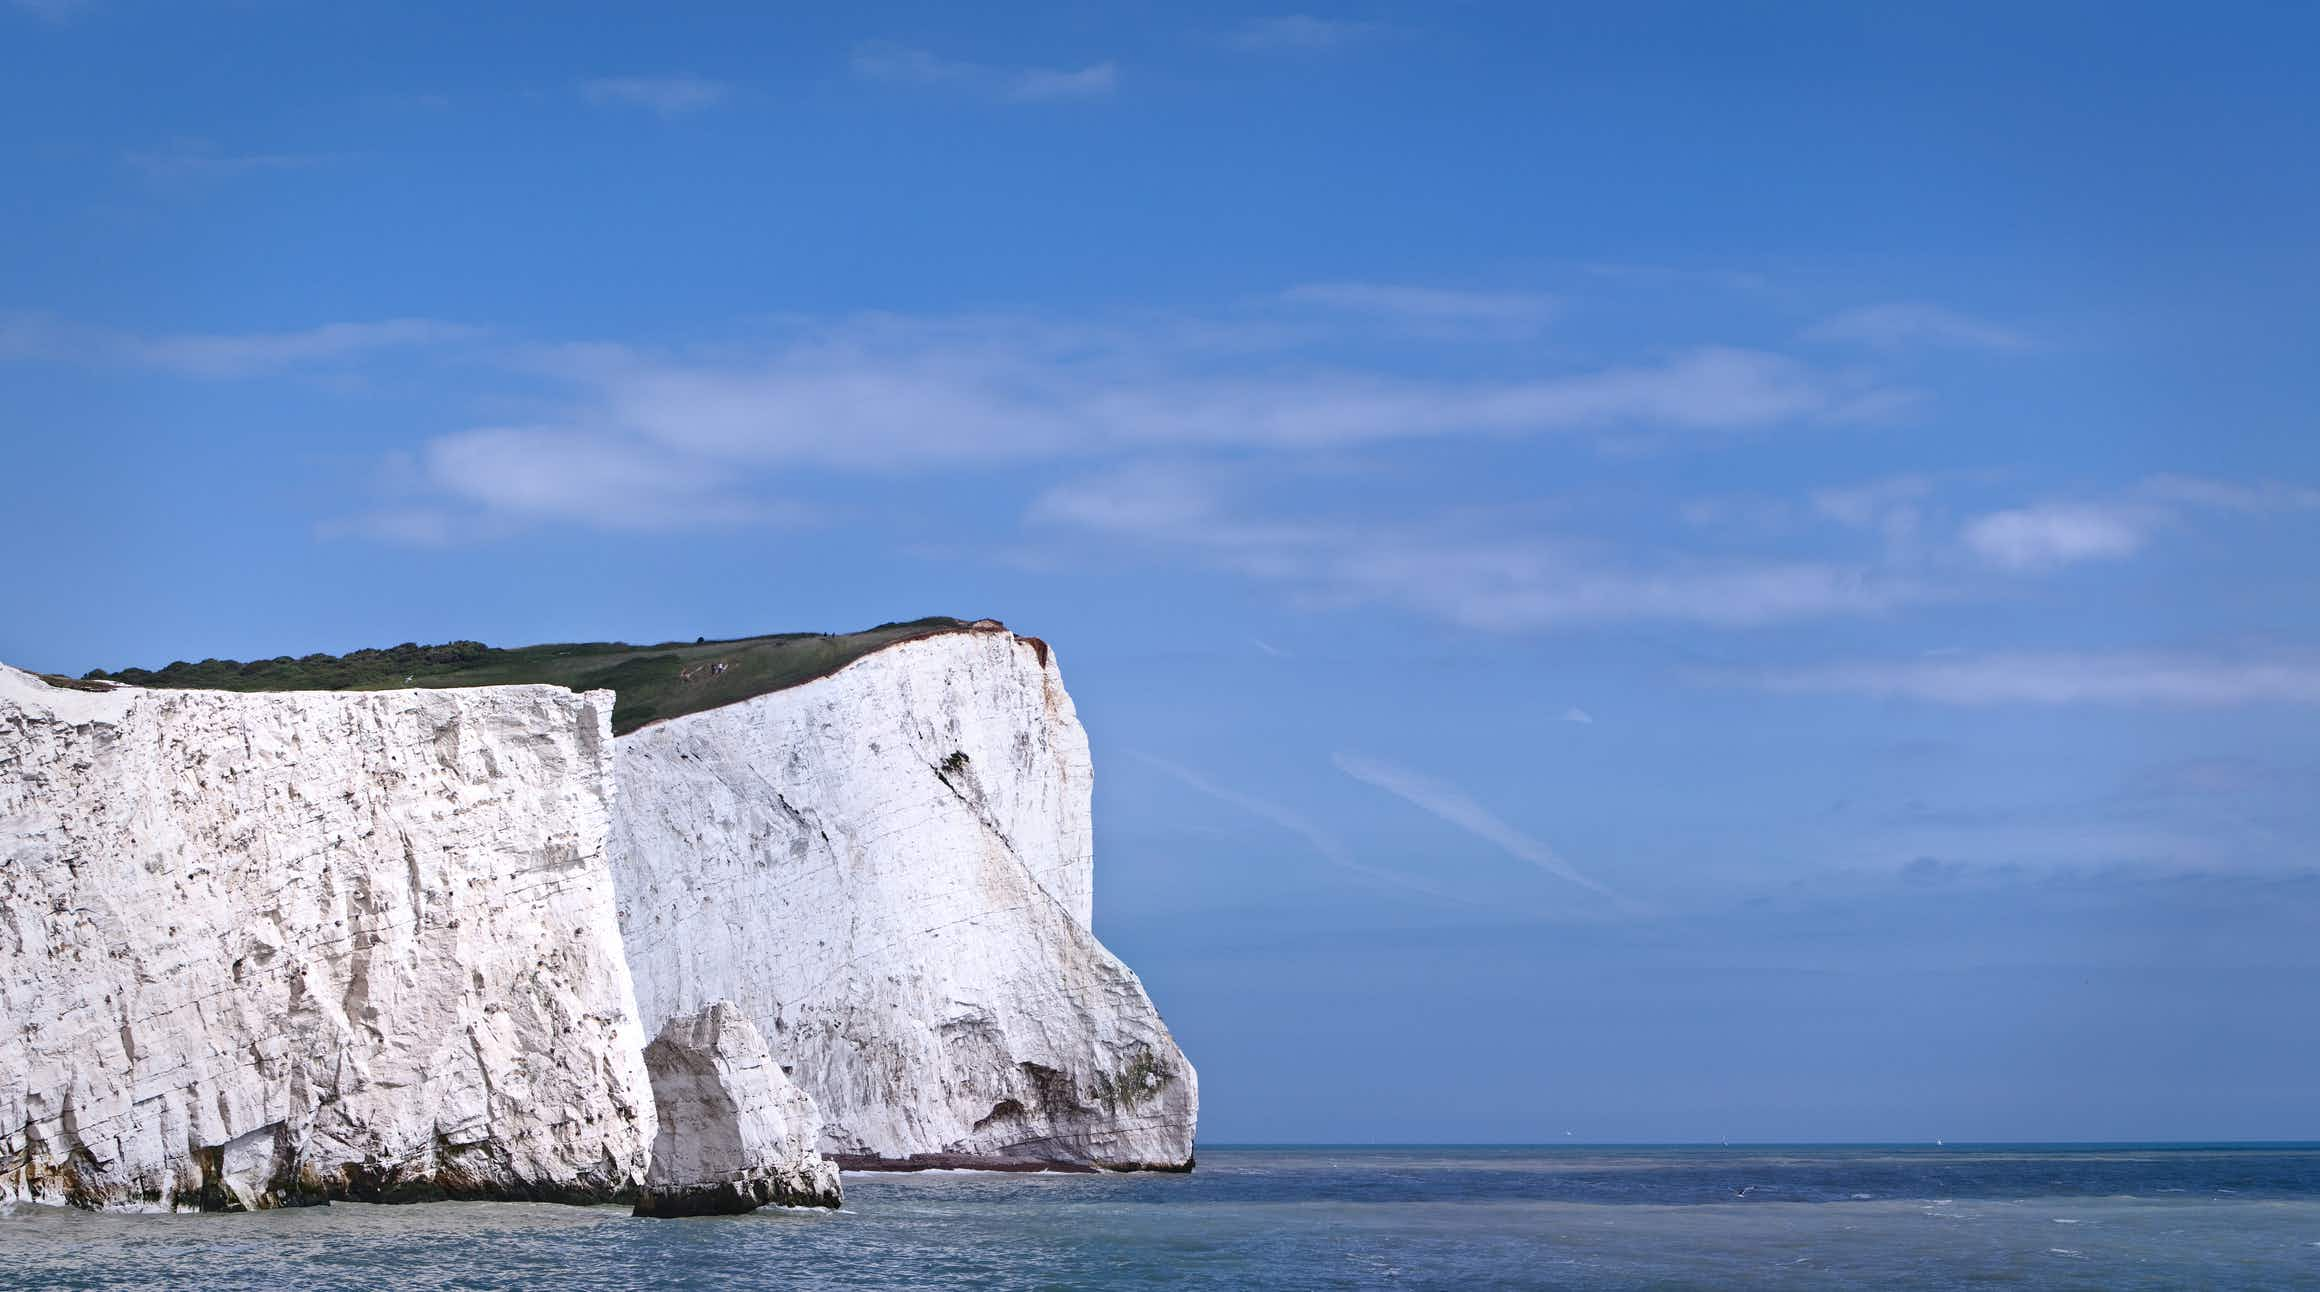 The White Cliffs of Dover are safe thanks to the public